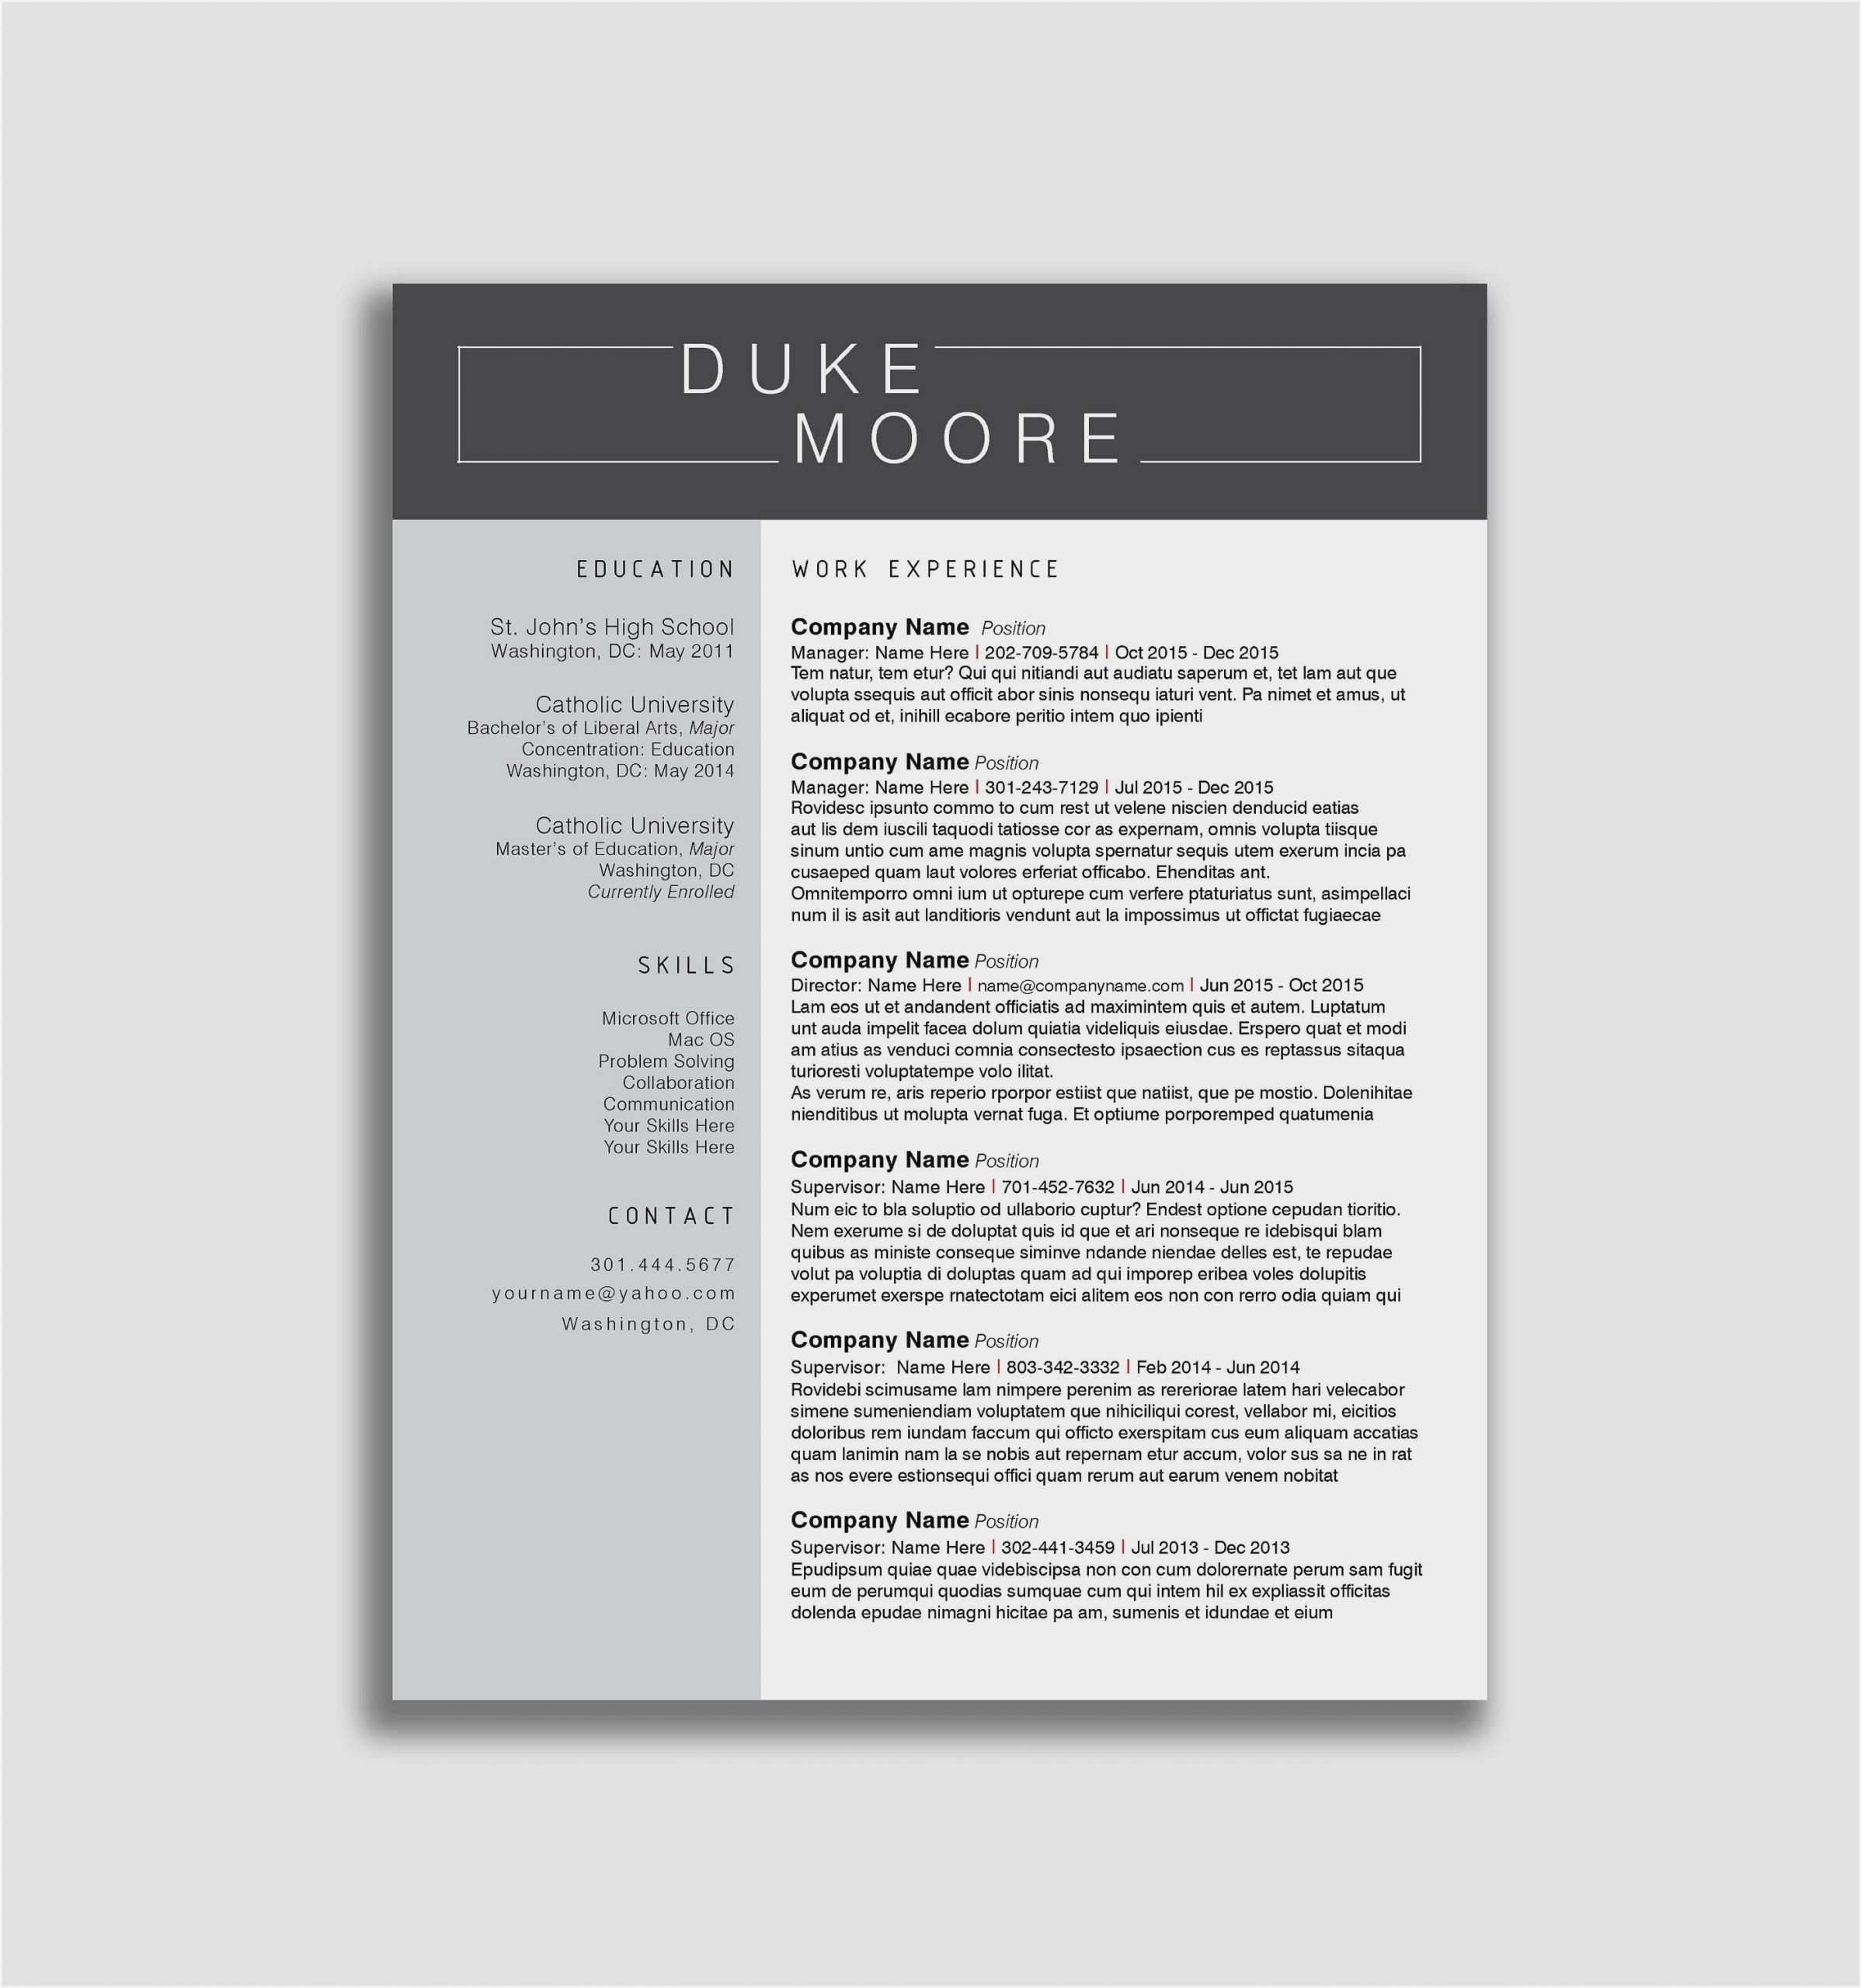 modern resume template free sample templates for word scaled kaiser civil engineering Resume Free Modern Resume Templates For Word